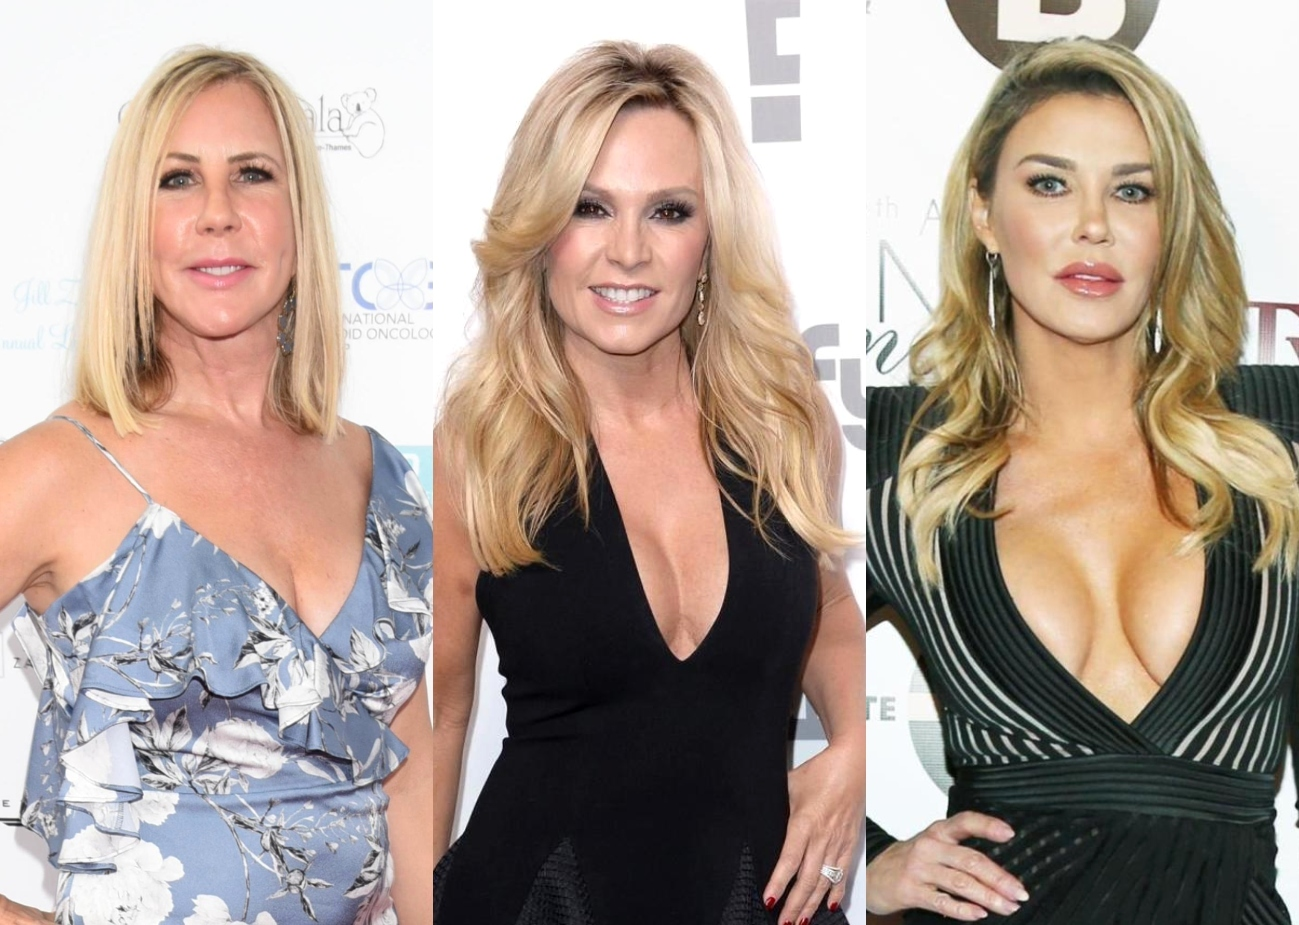 """PHOTOS: Real Housewives All Stars Season 2 Begins Filming in the Berkshires as Vicki, Tamra, and Brandi Deem Themselves as the New """"Tres Amigas"""""""